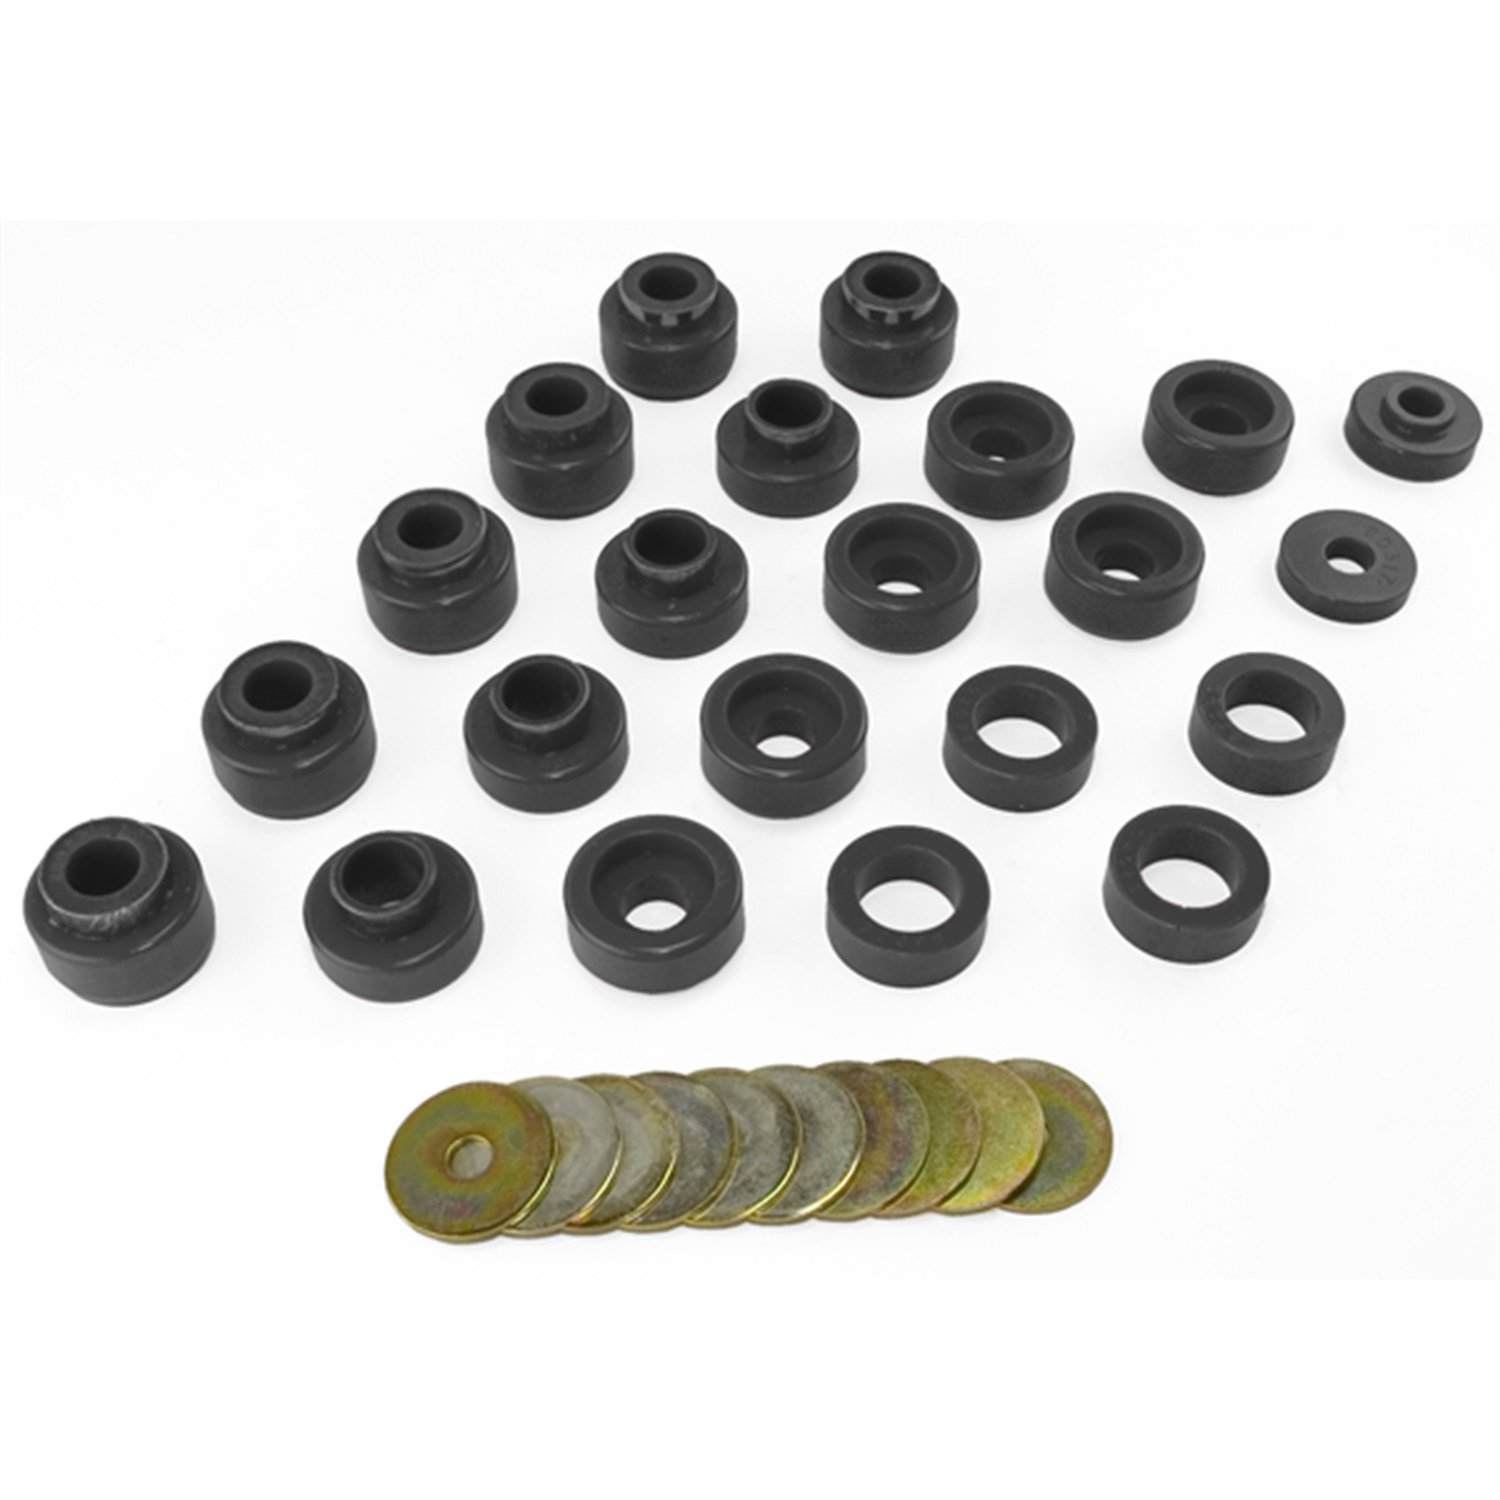 Prothane 1-105-BL Black Body Mount Bushing Kit for CJ5, CJ7, CJ8, YJ and TJ - 22 Piece